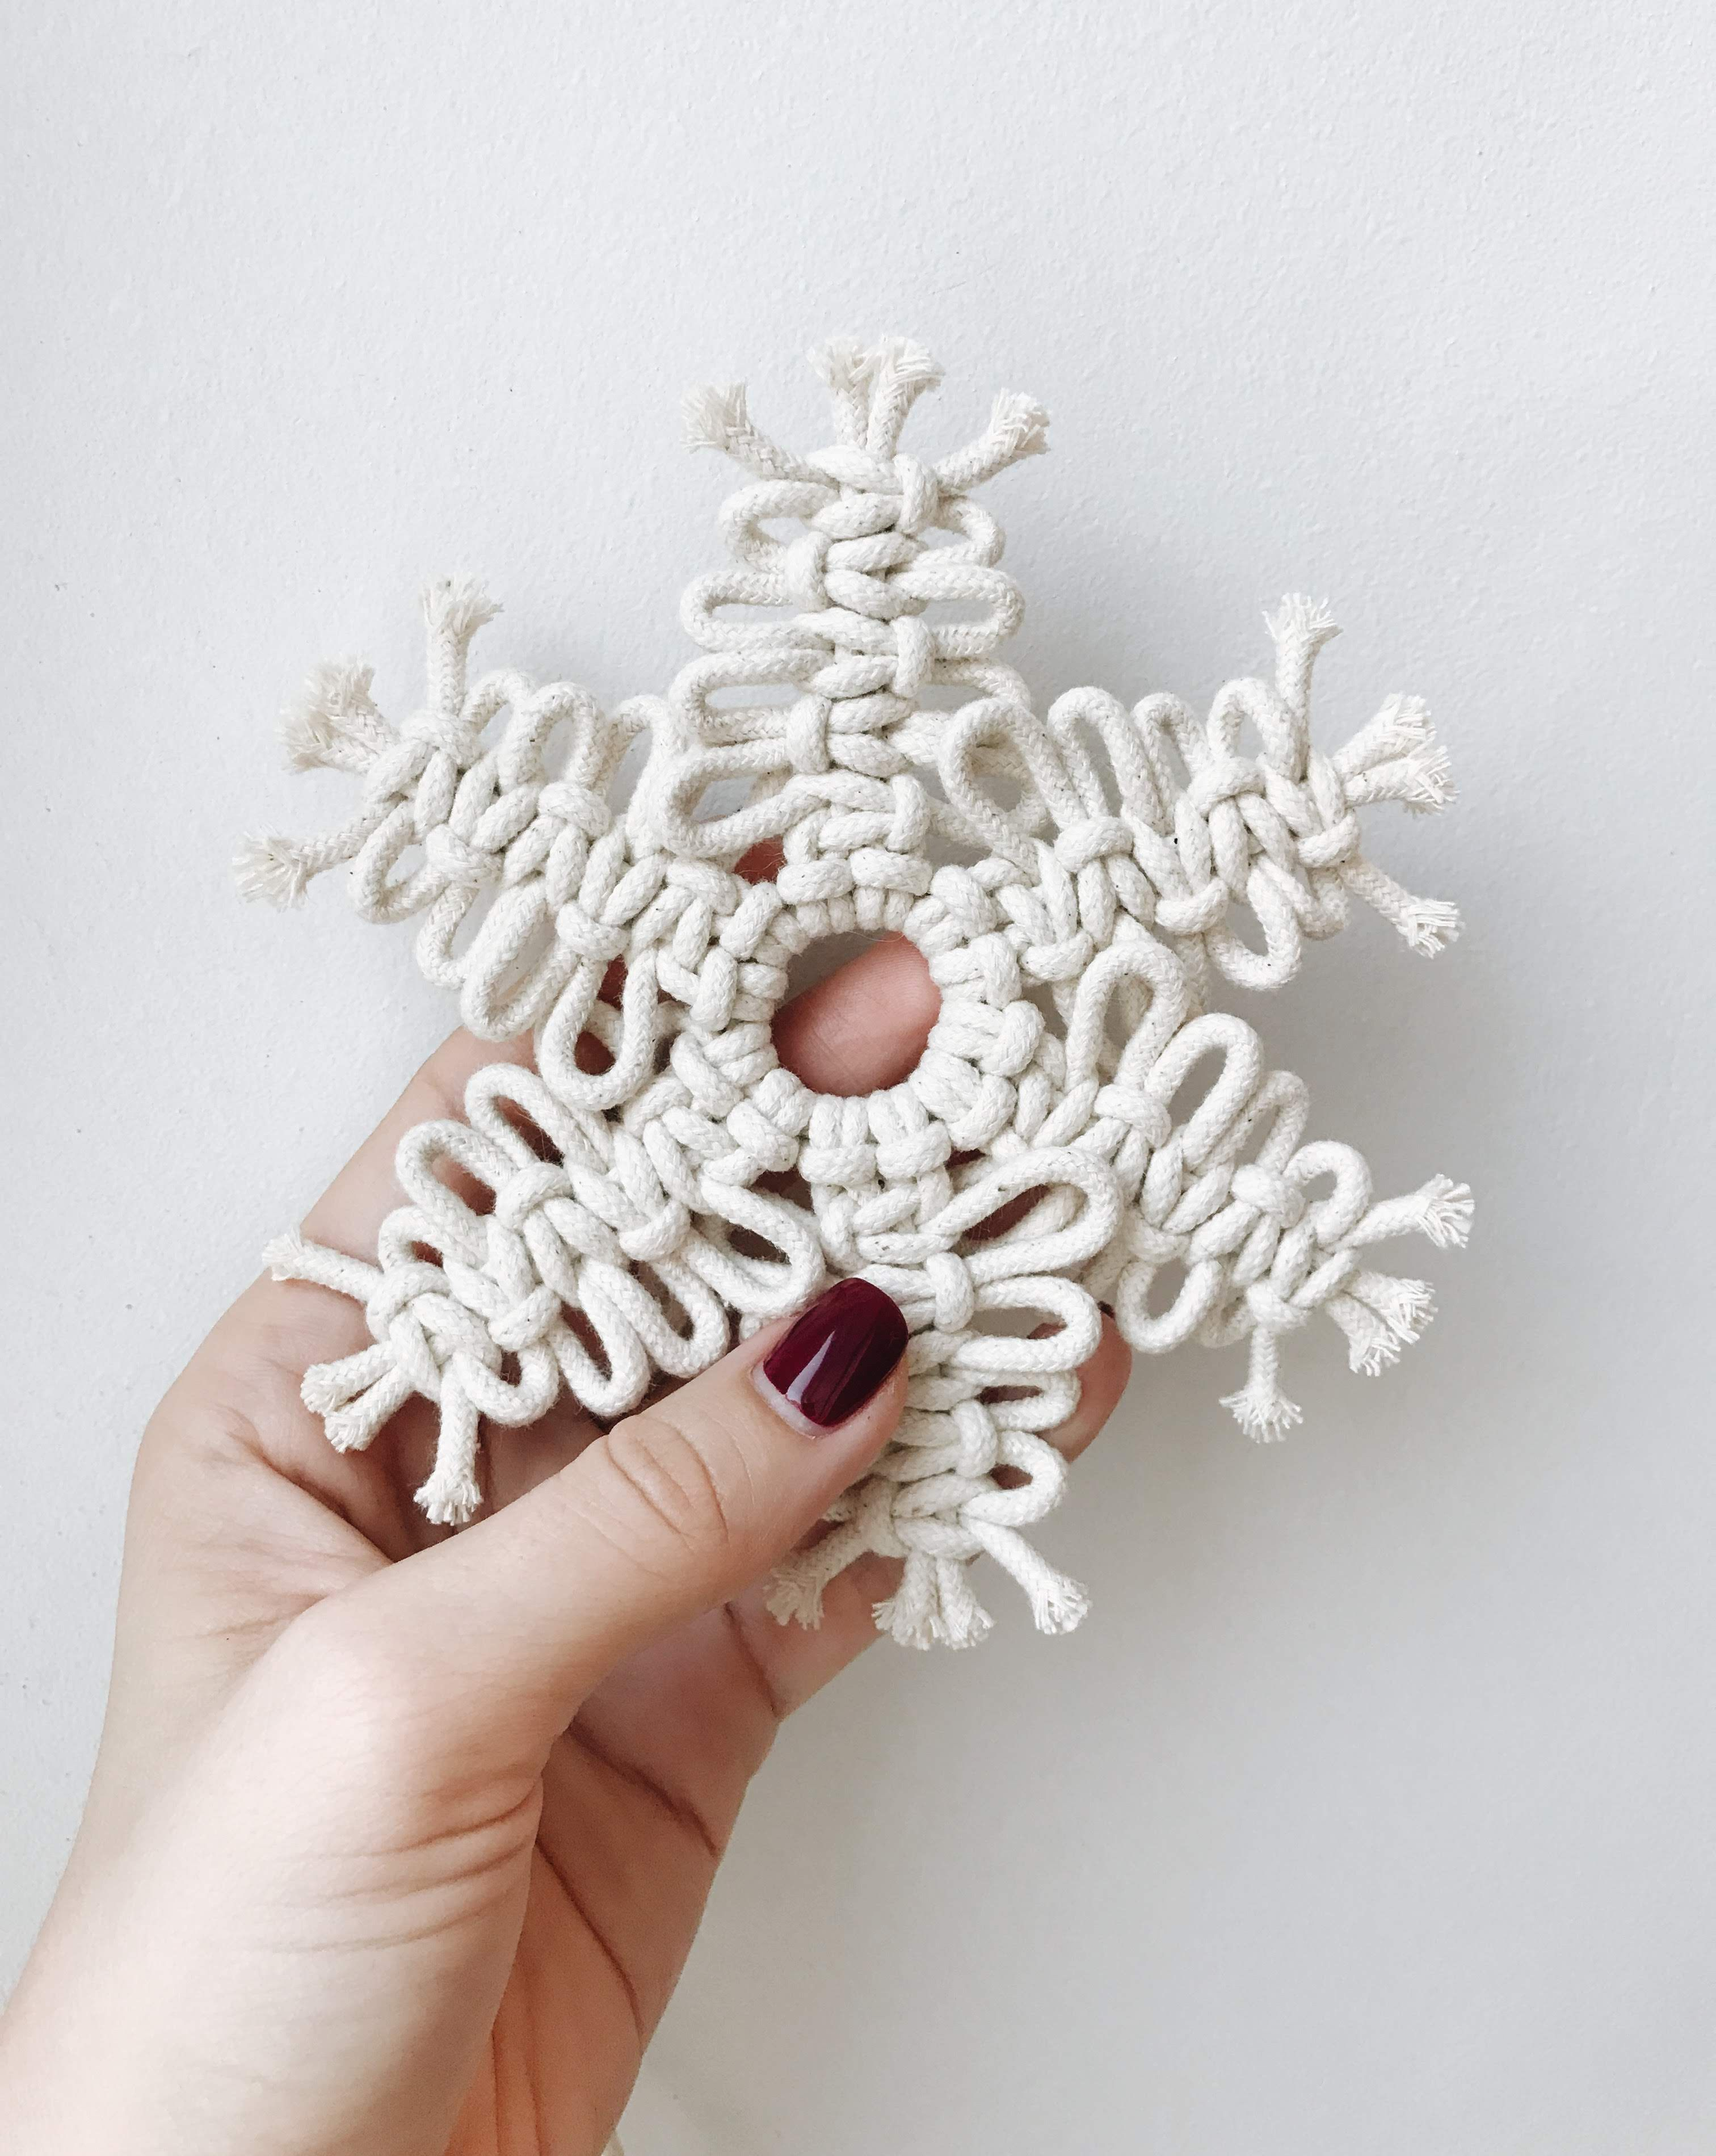 Do You Want To See Tutorial How To Make Macrame Snowflakes Come To My Instagram T Diy Christmas Snowflakes Christmas Snowflakes Crafts Diy Christmas Fireplace